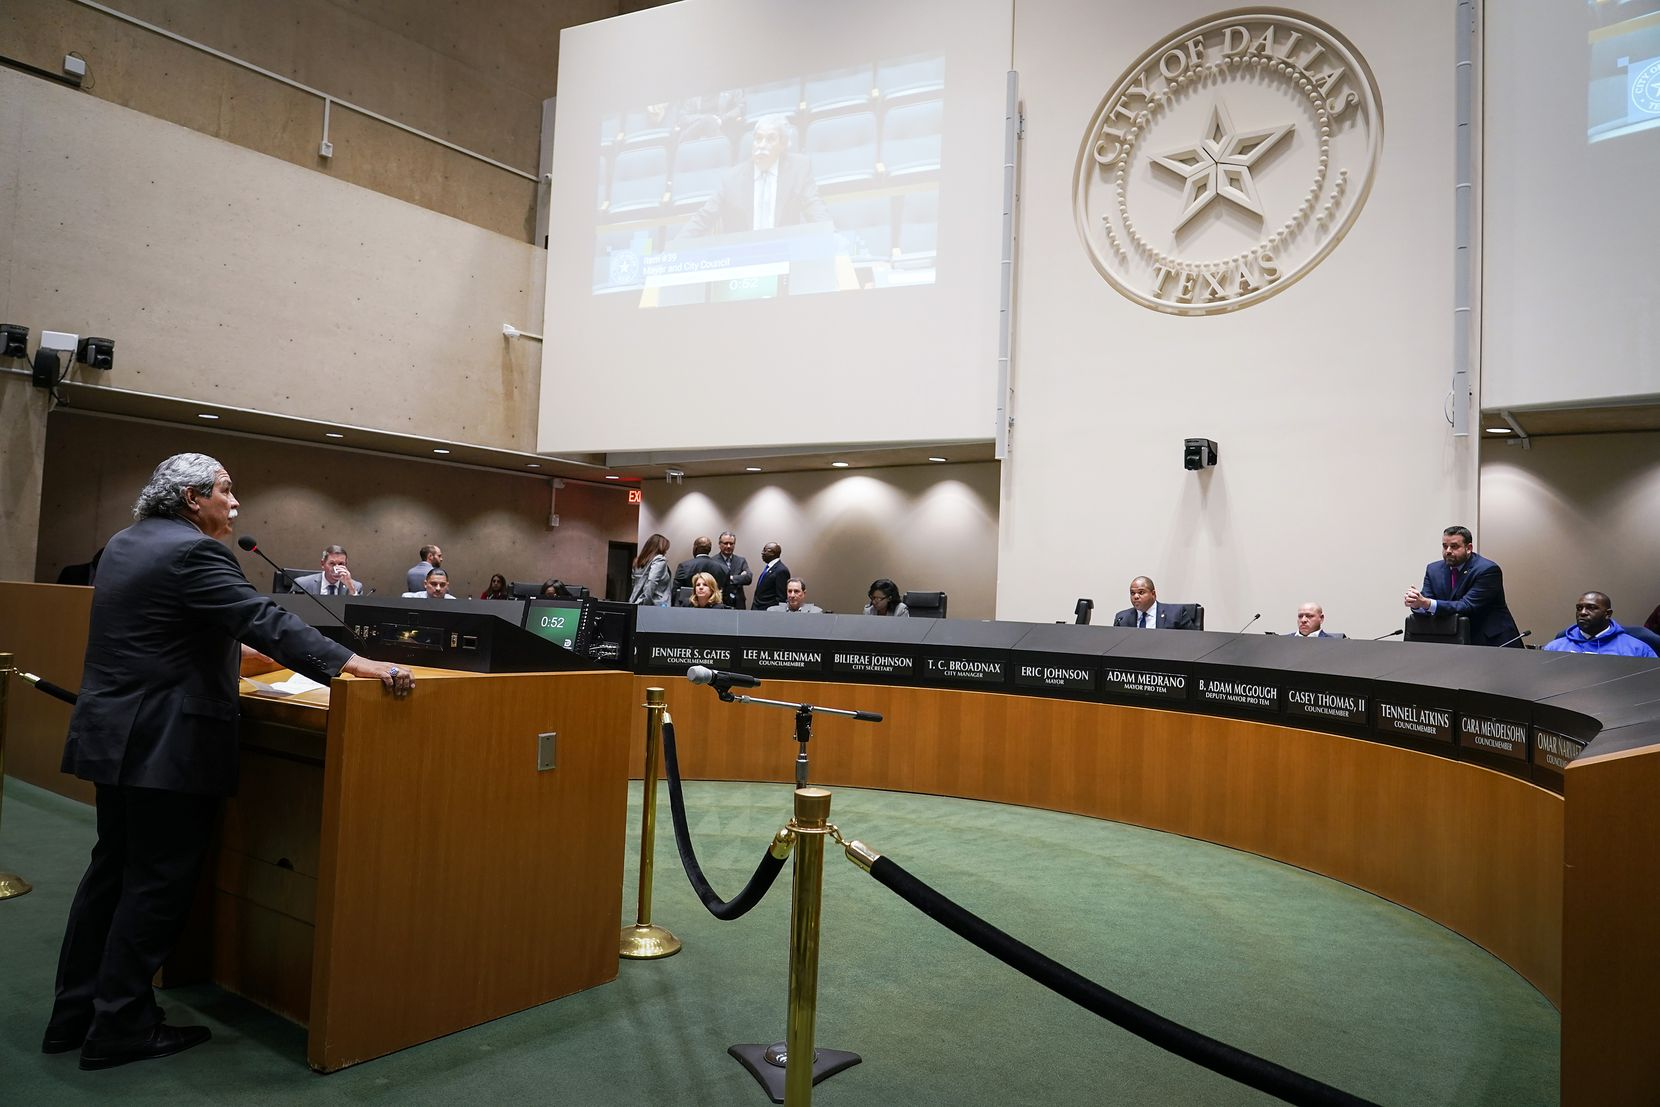 Dallas ISD Superintendent Michael Hinojosa spoke at a Dallas City Council meeting Wednesday in favor of a plan to renovate the historic Reverchon Park.